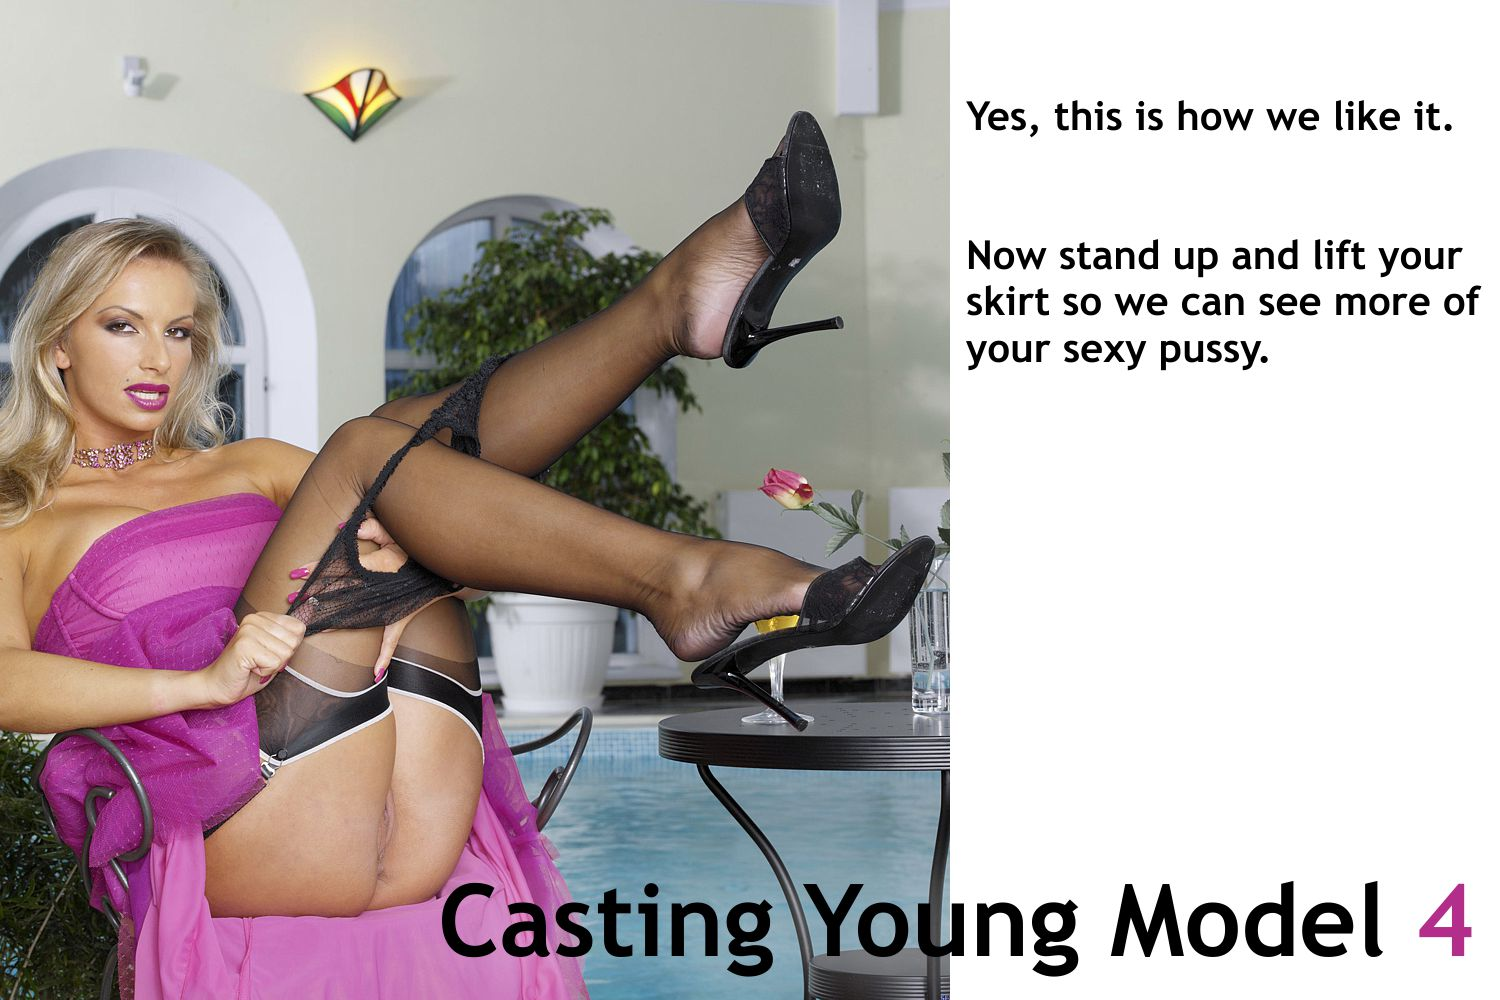 casting_young_model_4_005